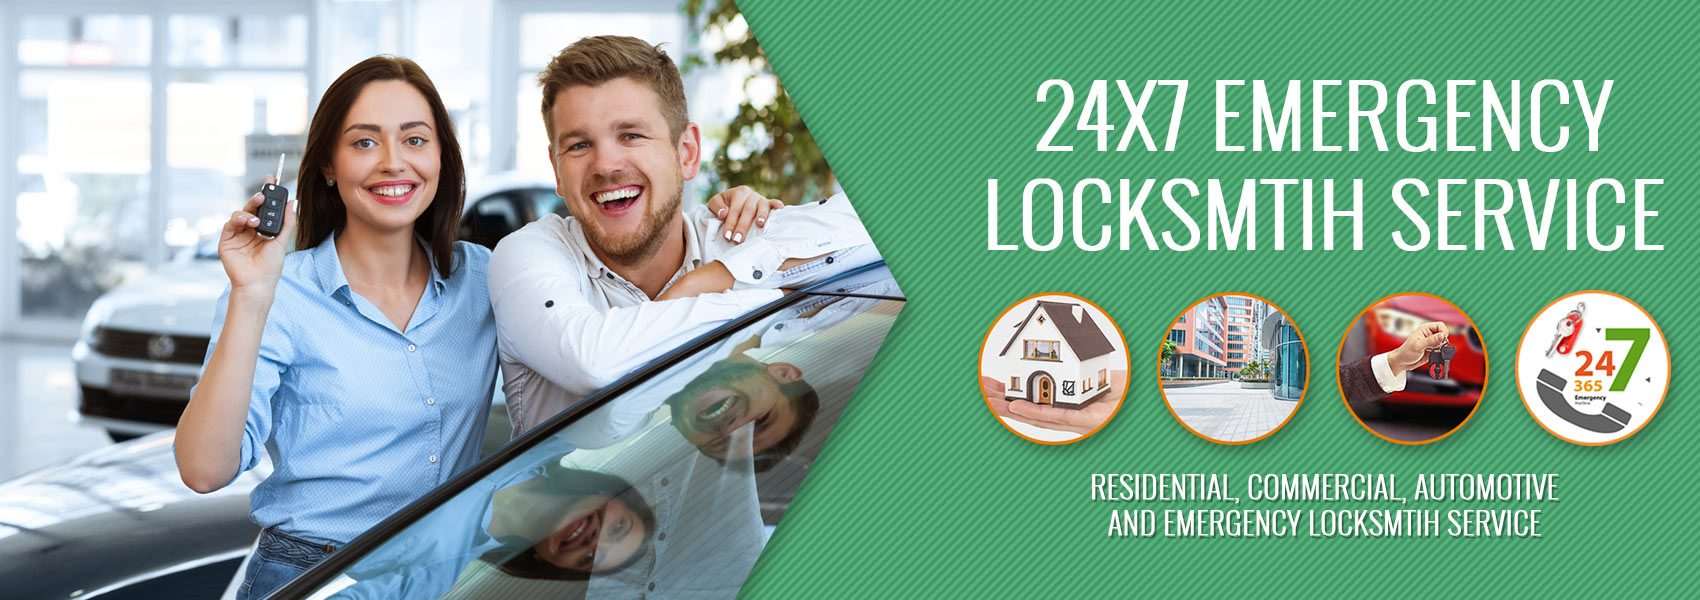 Amber Locksmith Store Miami, FL 305-894-5972